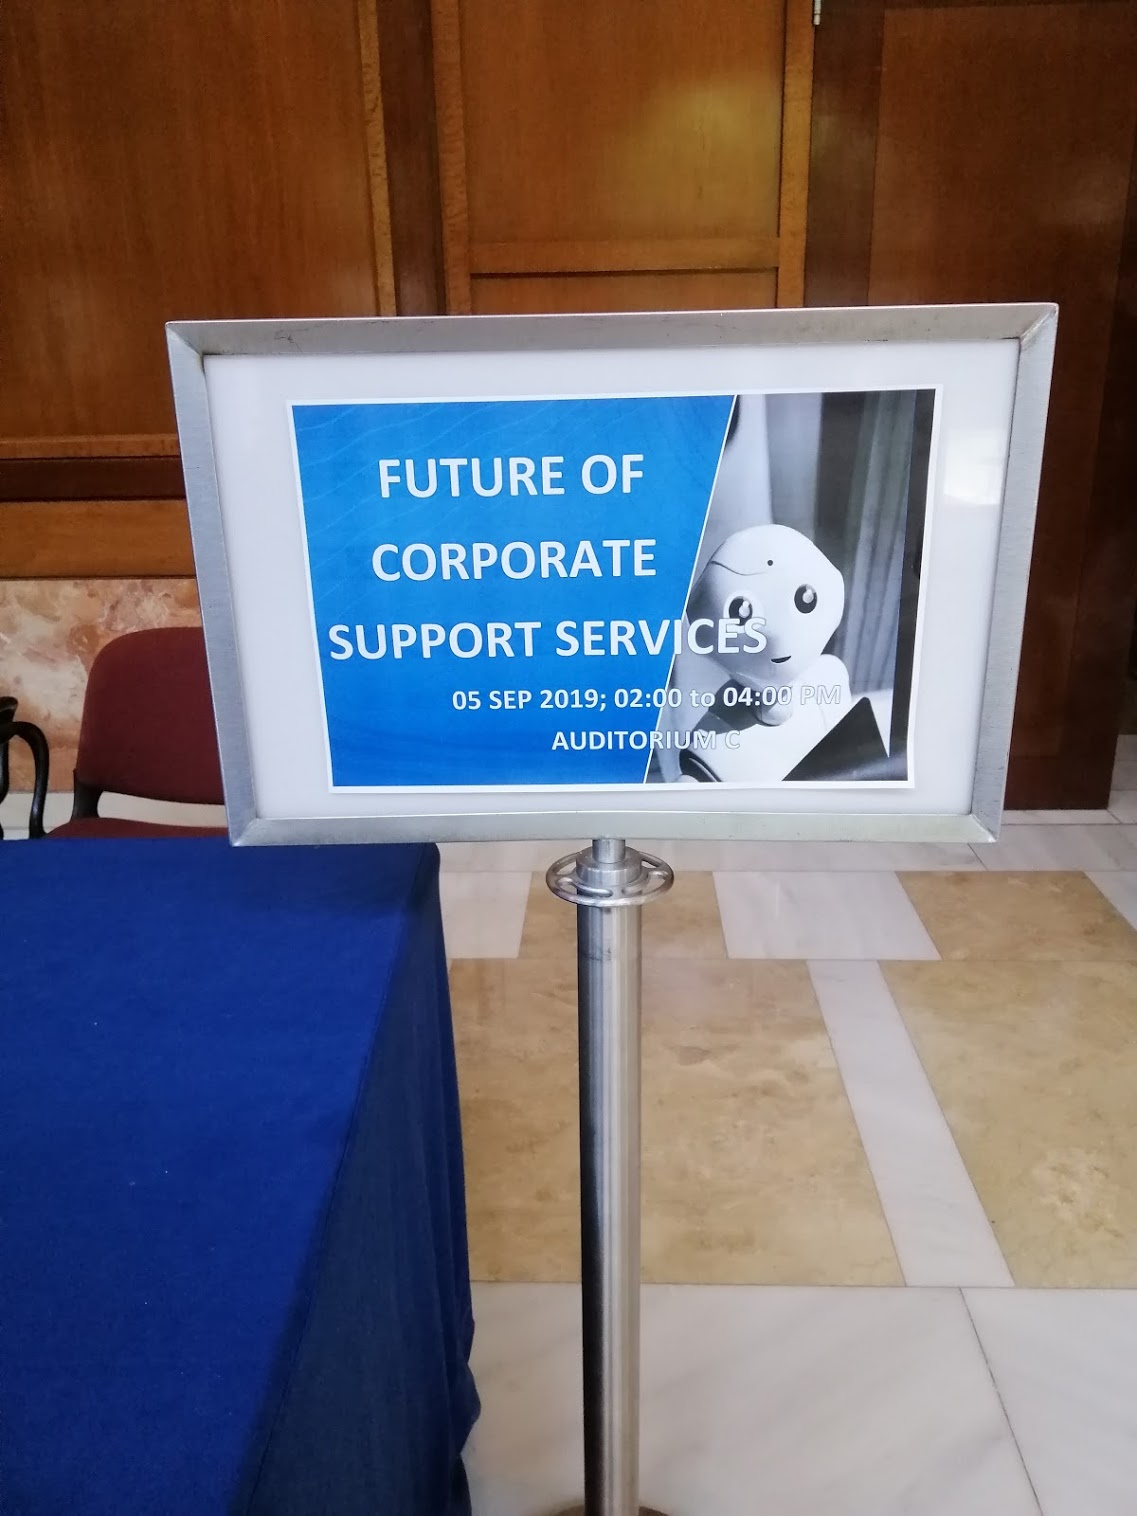 2:04 p.m. - In parallel, the Future of Corporate Support Services has begun!